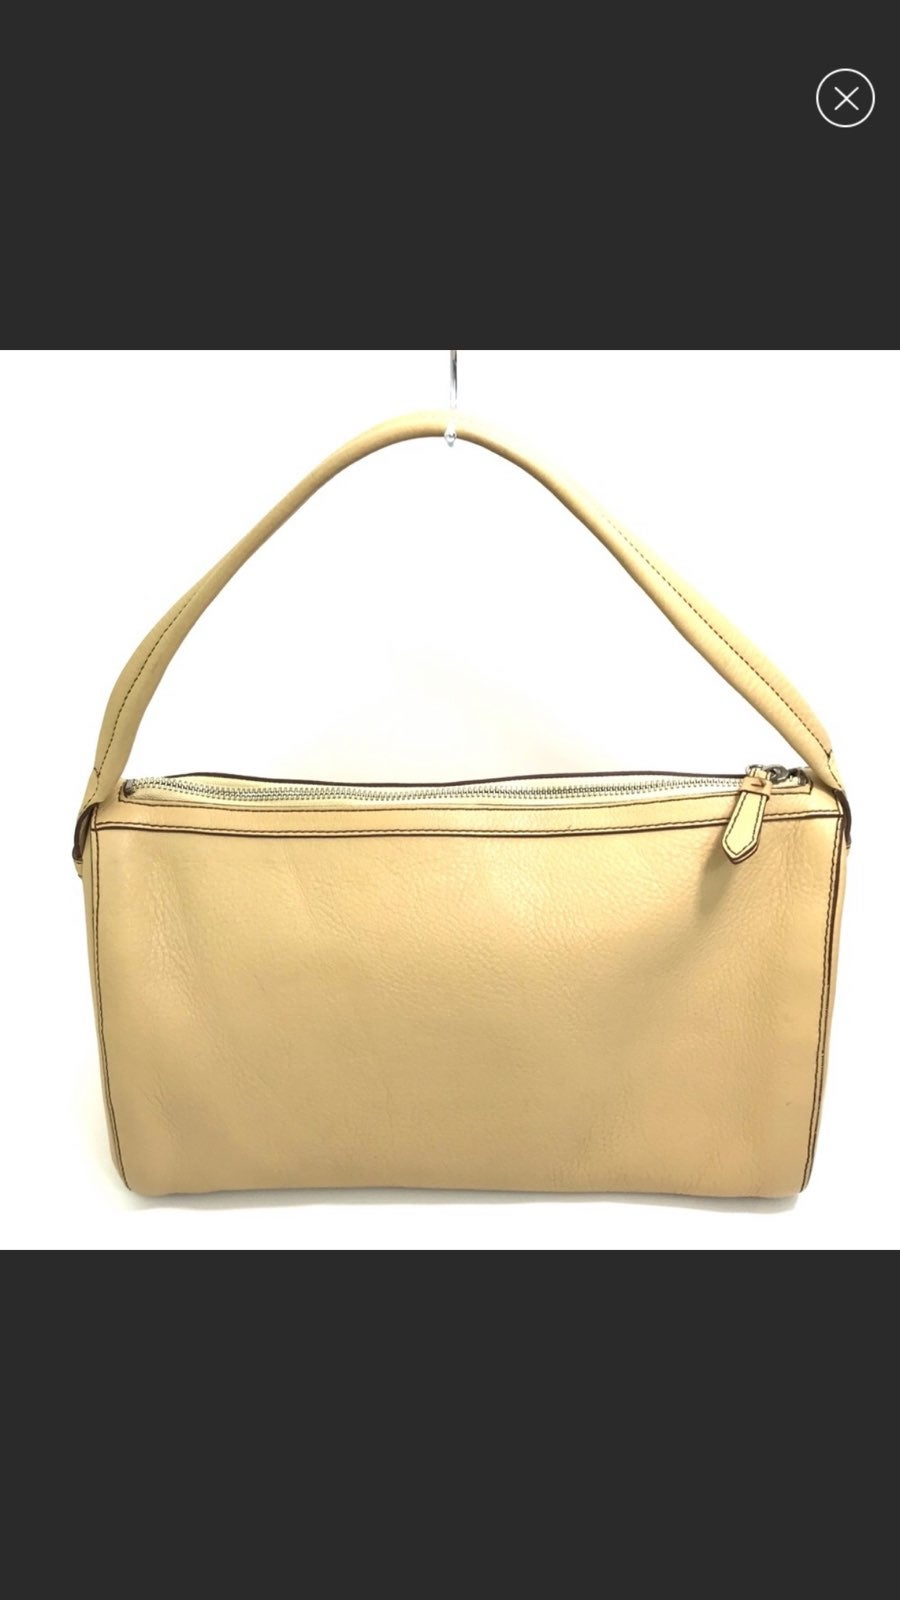 COLE HAAN Butter Pebbled Leather PURSE